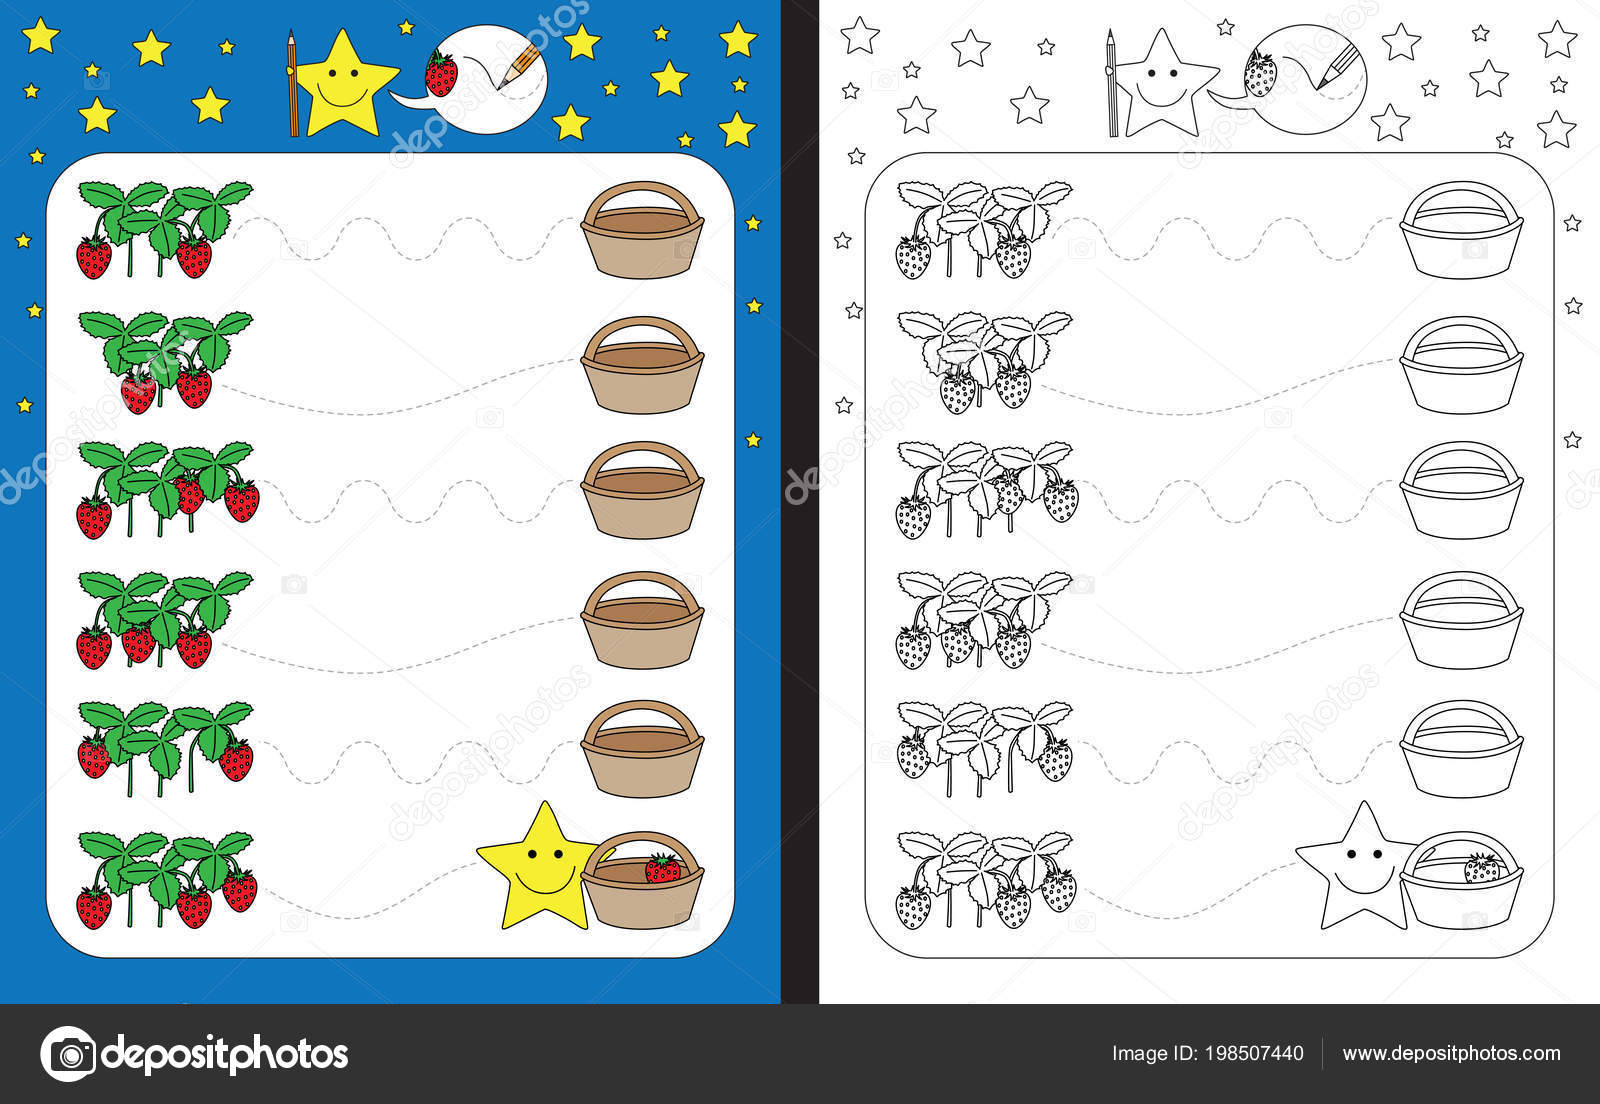 Preschool Worksheet Practicing Fine Motor Skills Tracing